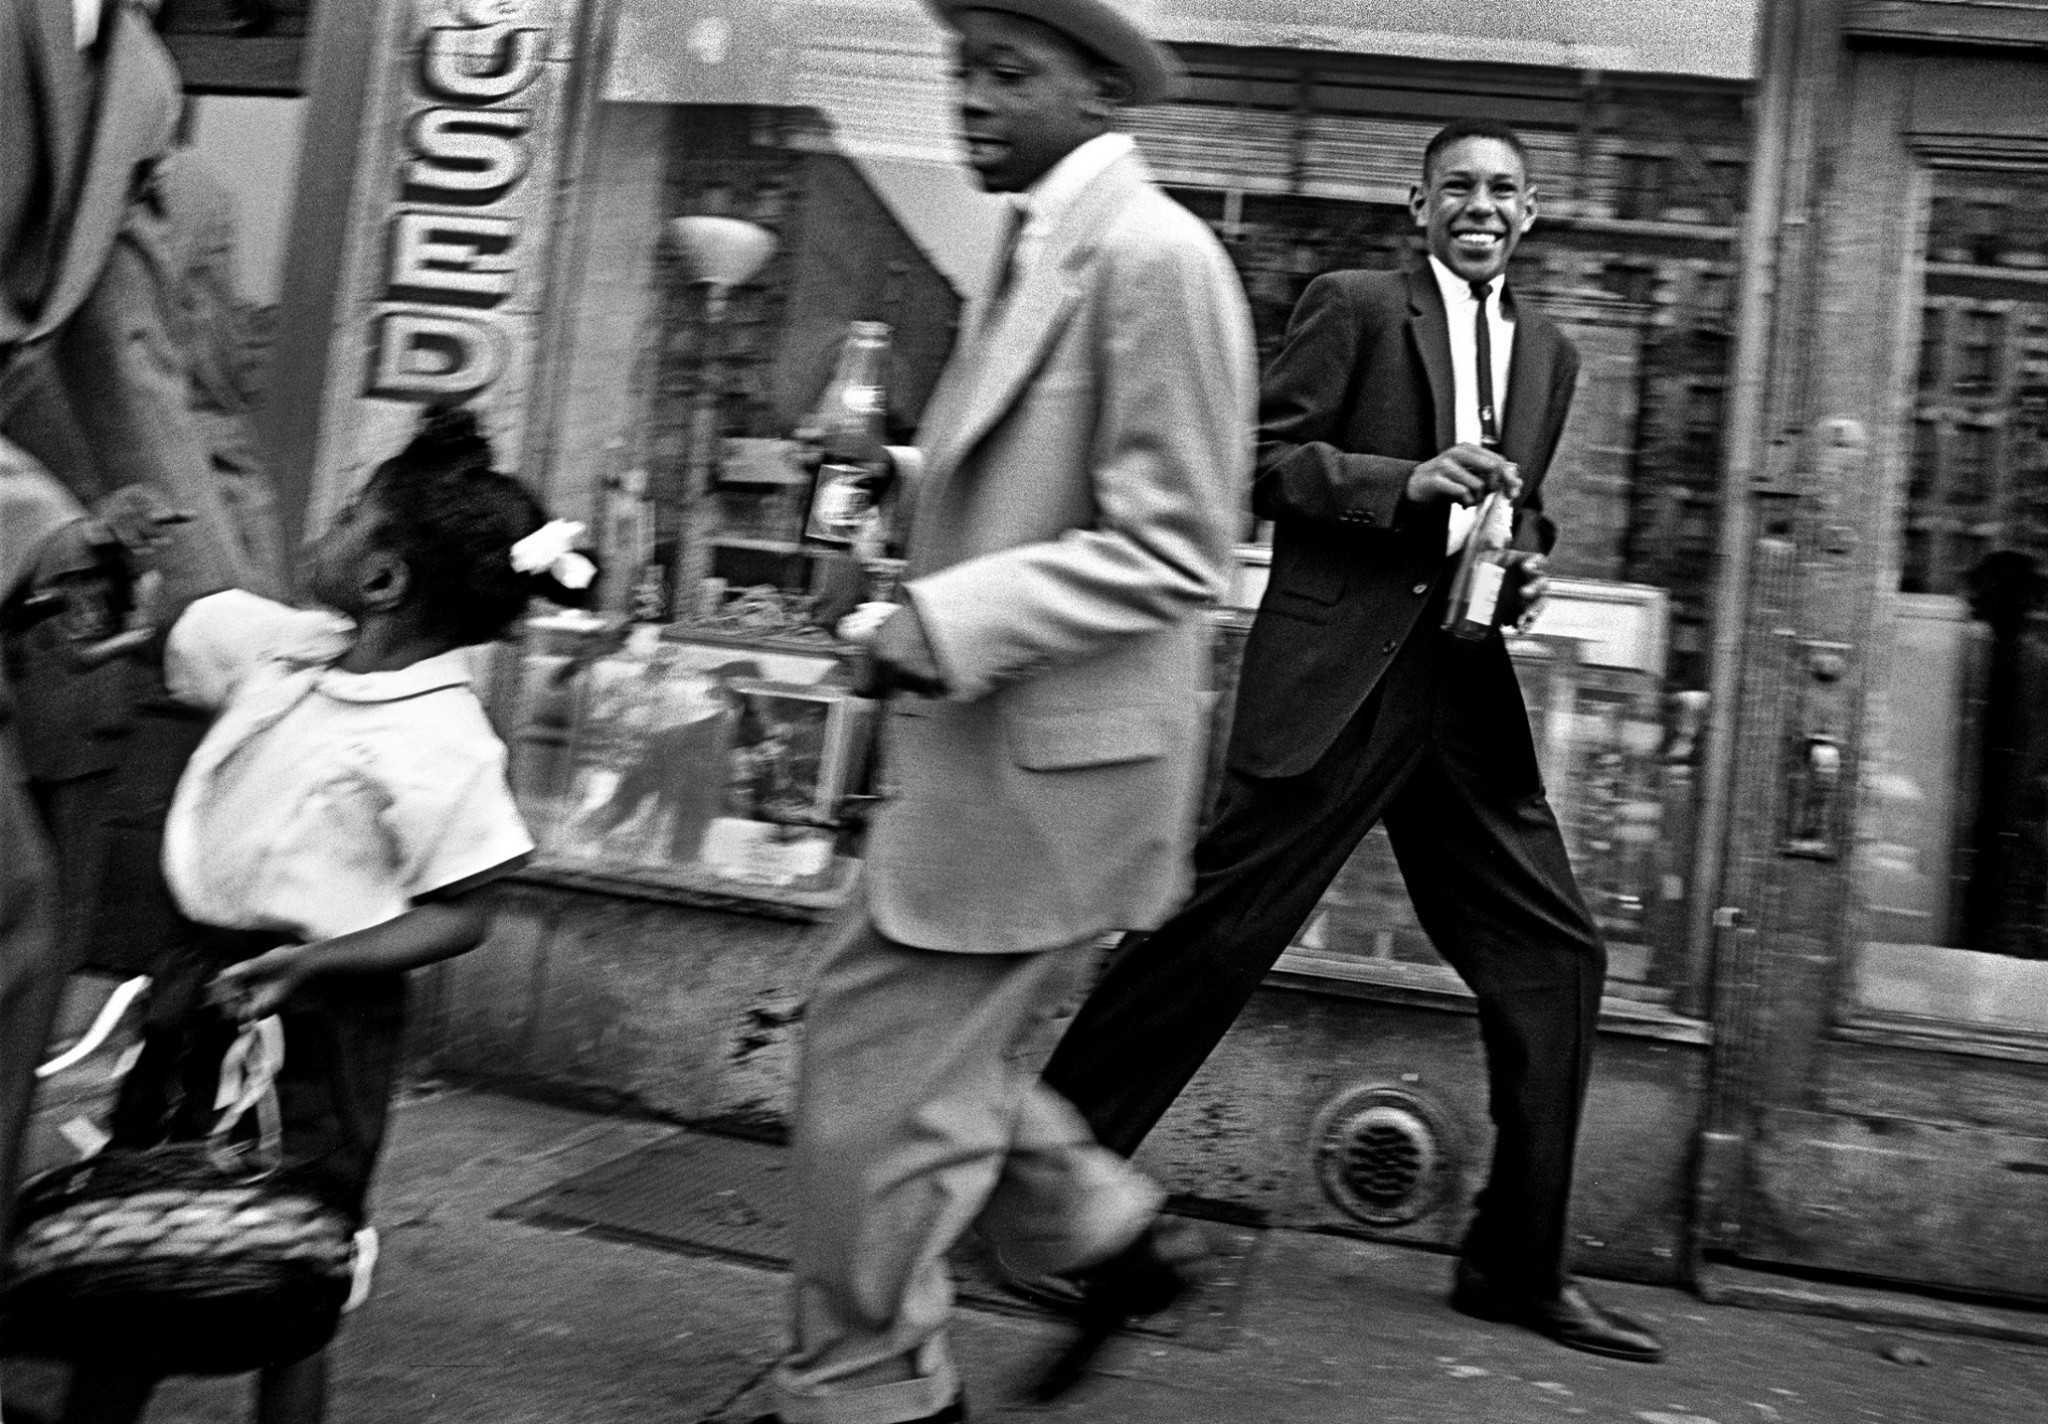 William Klein: 'My pictures showed everything I resented about America'